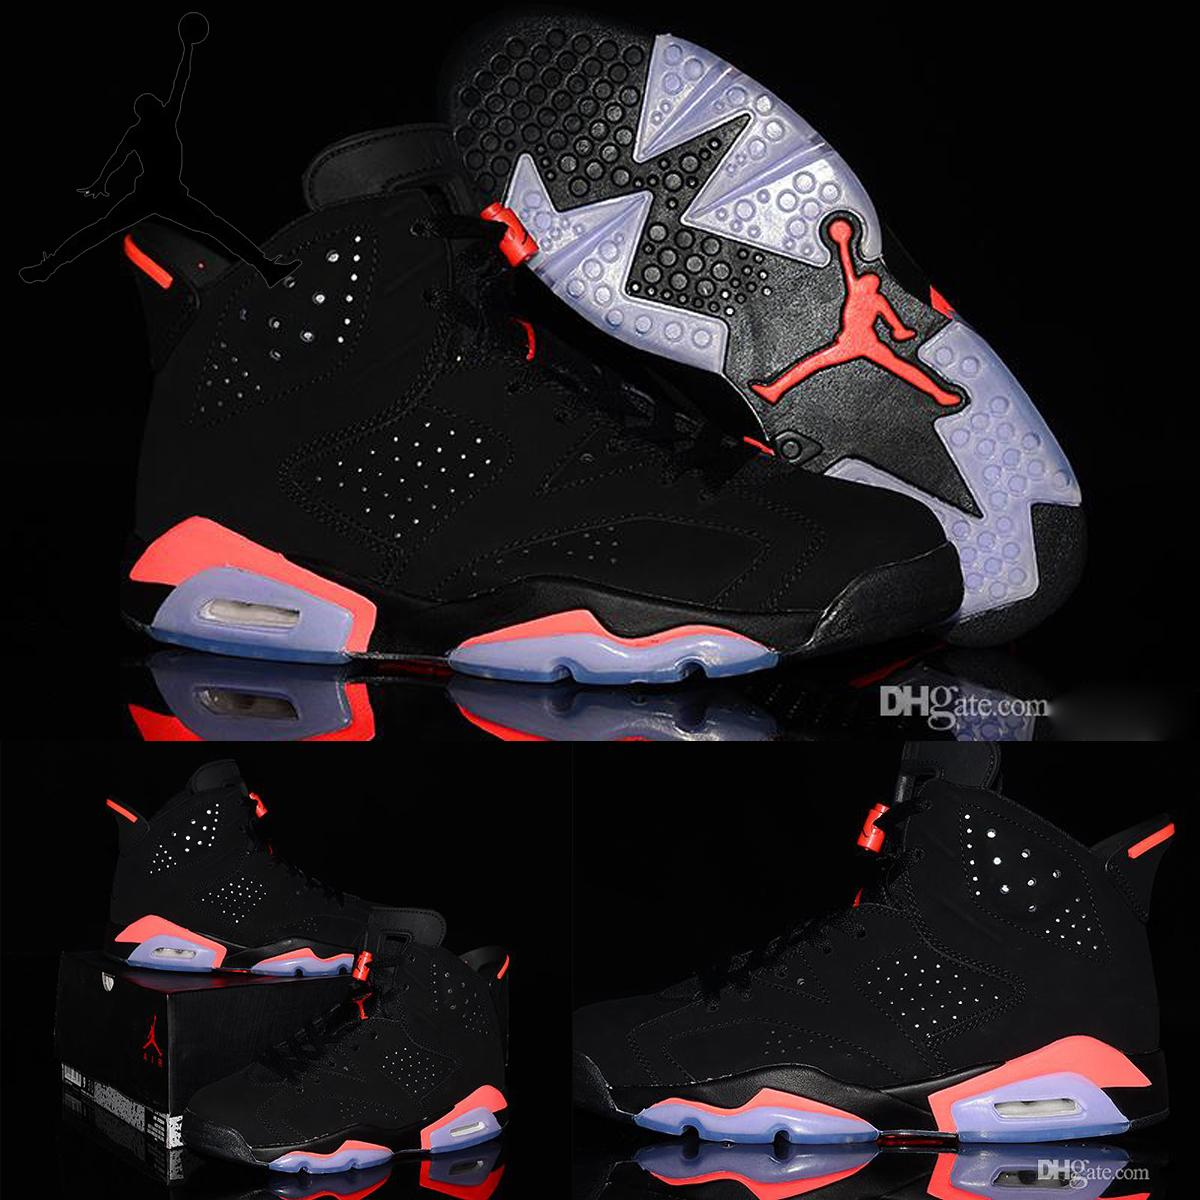 the best attitude 82157 bf674 Nike Air Jordan 6 Retro VI Black Infrared 23 Gs Mens Womens Basketball  Shoes,Original Nike AJ6 J6 Jordan6 Black Red For Men Women Sneakers  Basketball Shoes ...